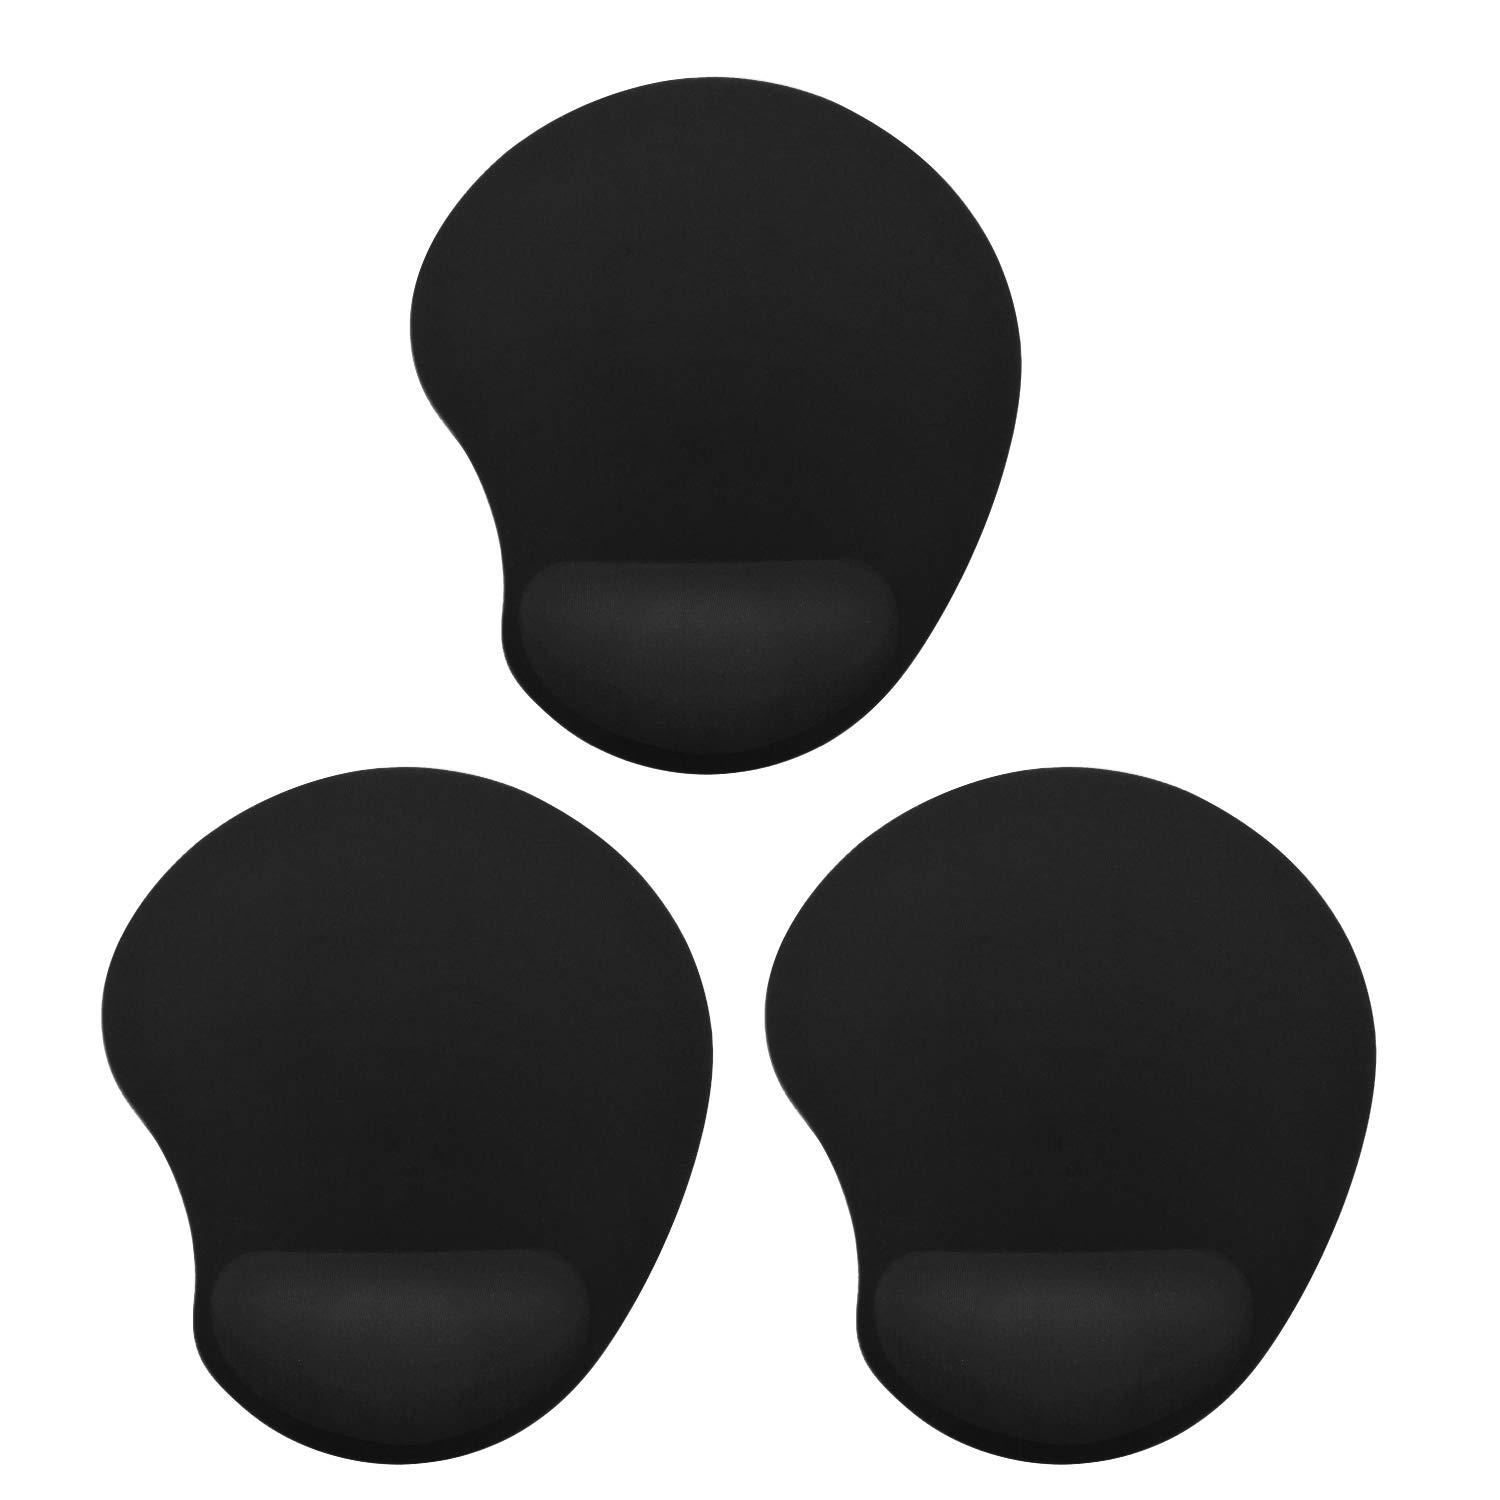 MROCO Mouse Pad with Wrist Support, Mousepad with Wrist Rest Ergonomic Memory Foam Mouse Pad Wrist Rest Support Wrist Cushion Support Lightweight Rest Mousepad for Home Office Travel 3 Pack Black